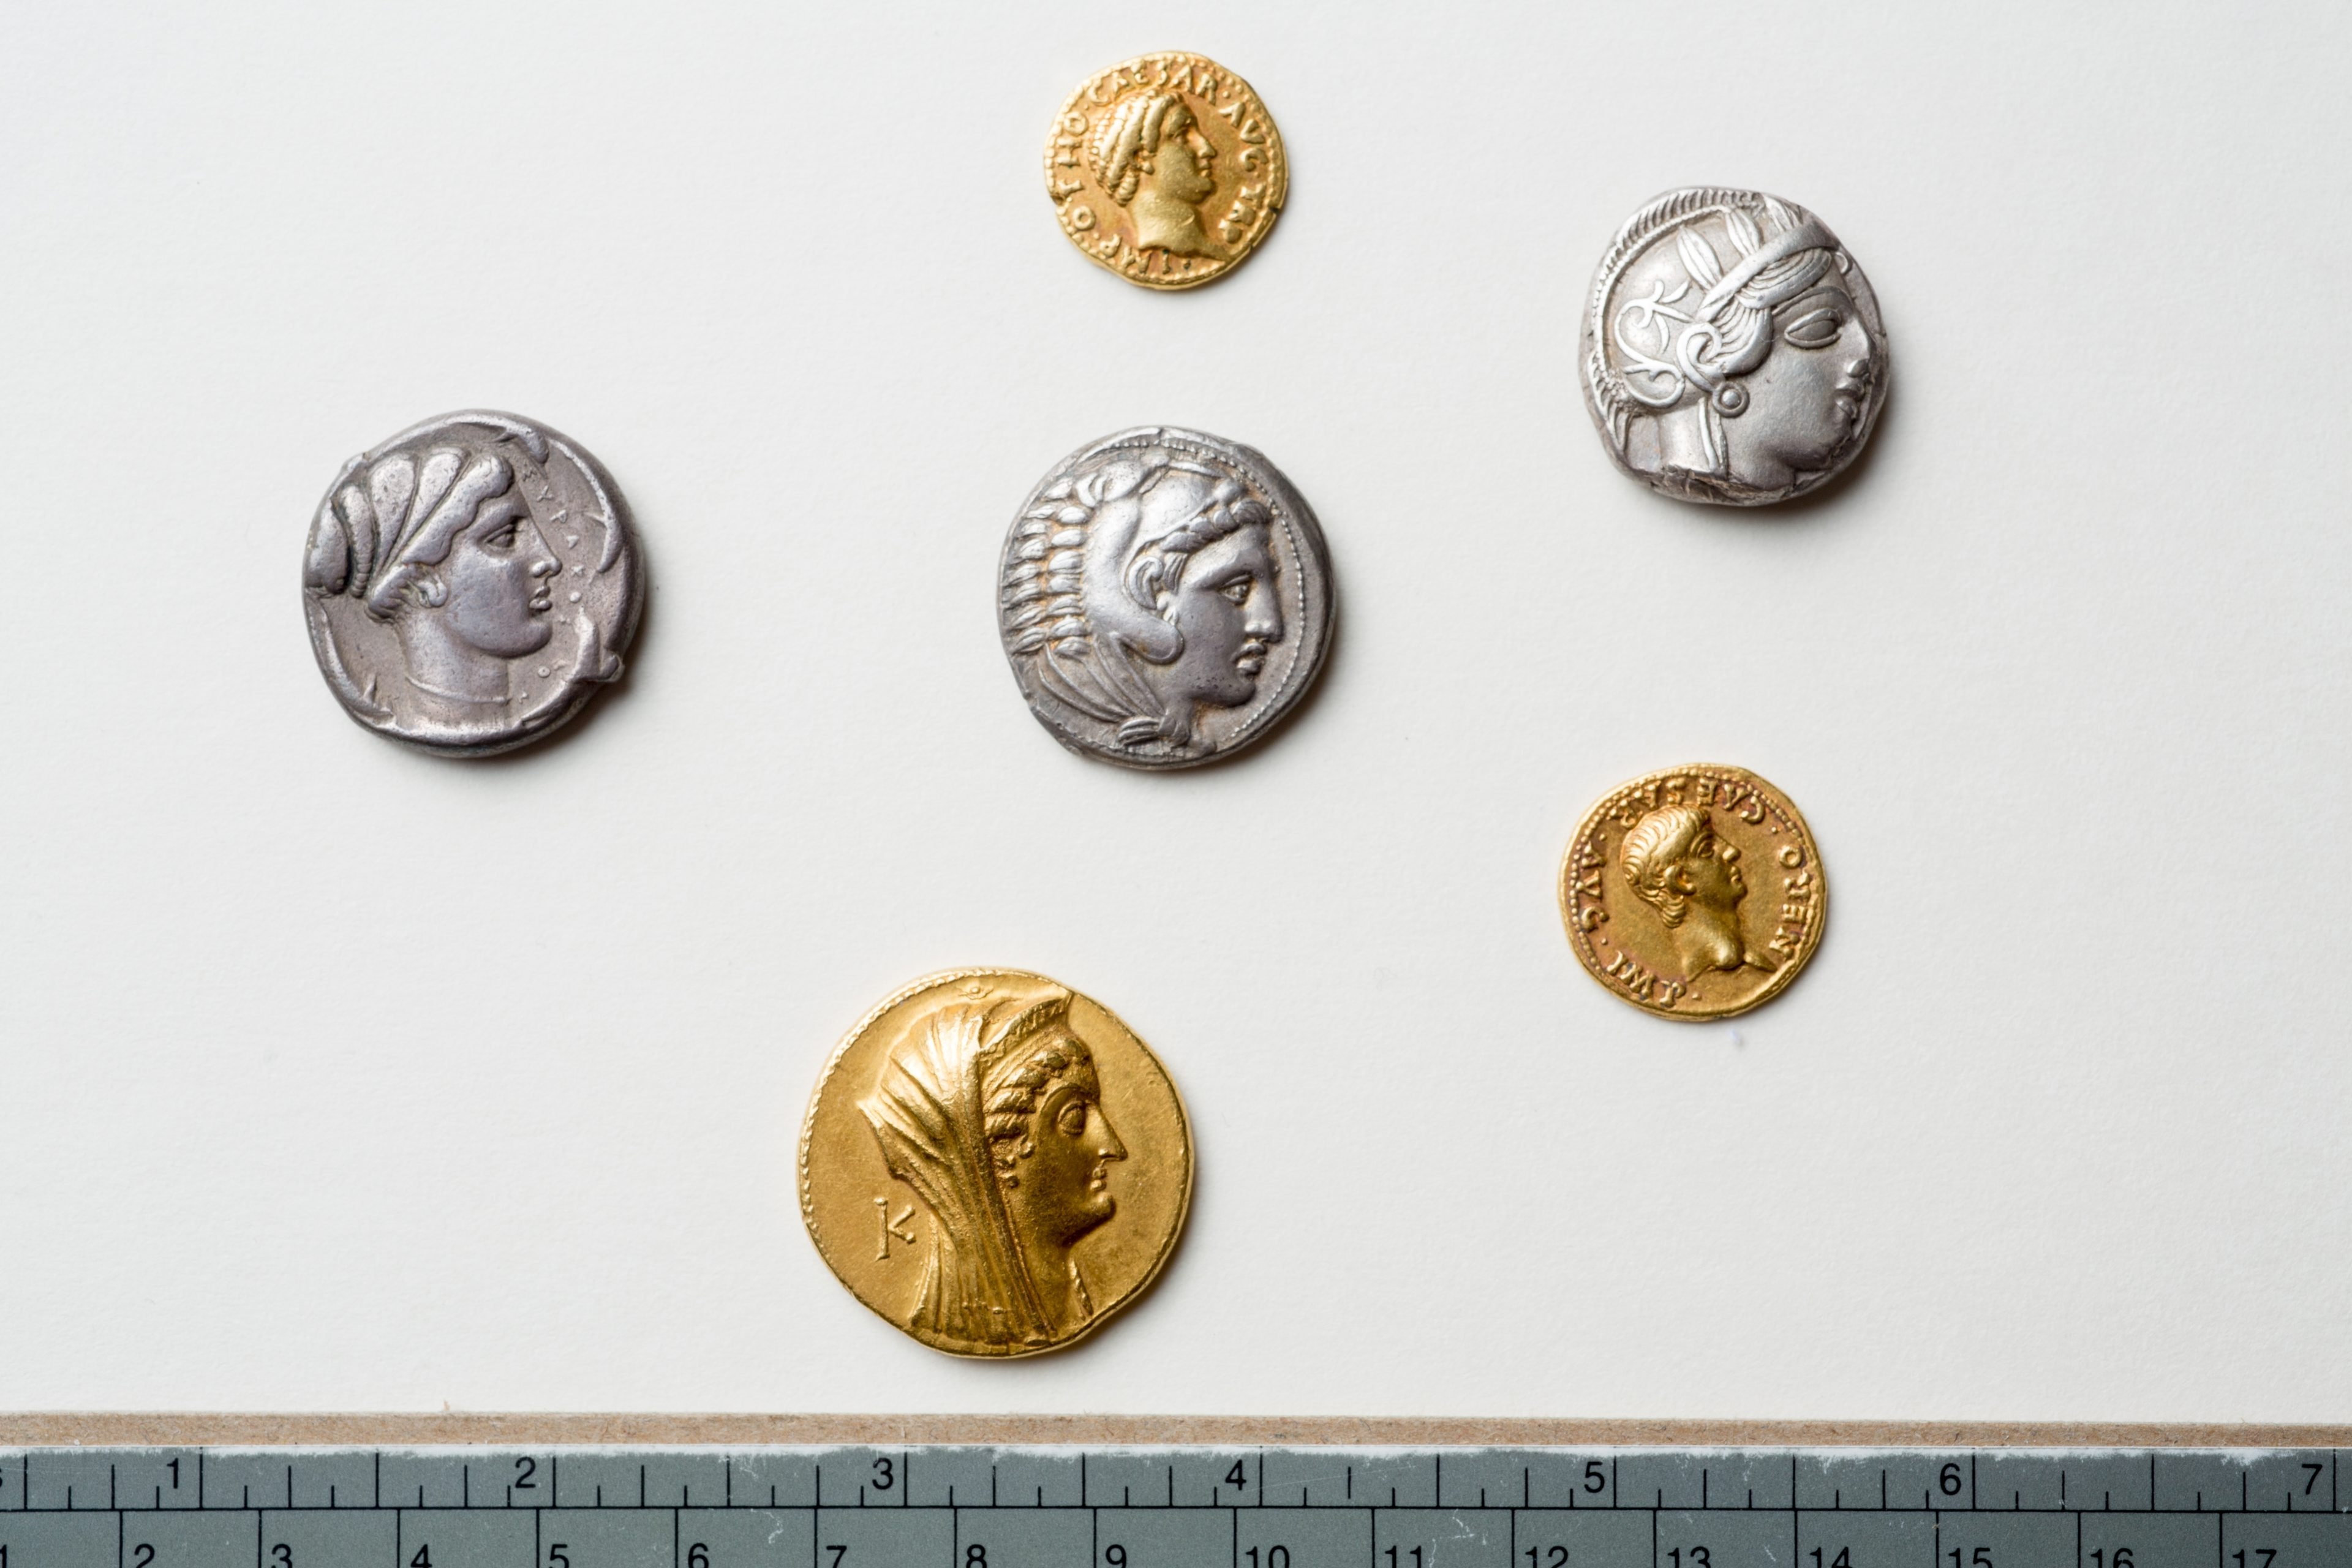 These rare Greek and Roman coins were found at the University at Buffalo Library.